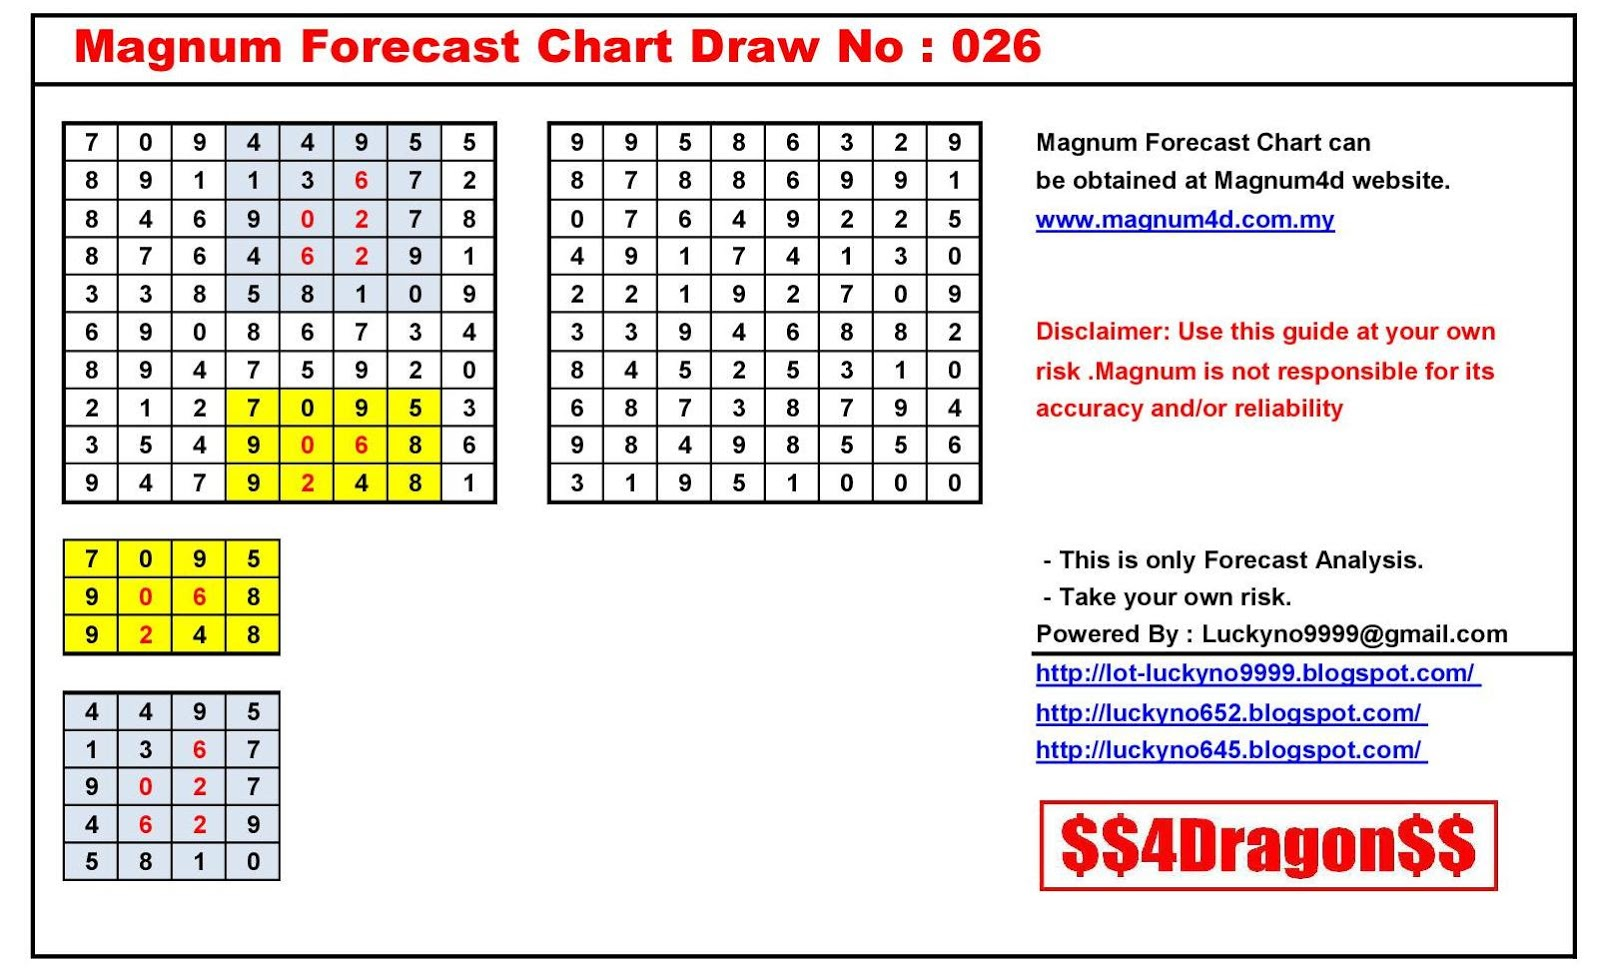 Lucky No 9999: Magnum Forecast Chart Draw No. 026